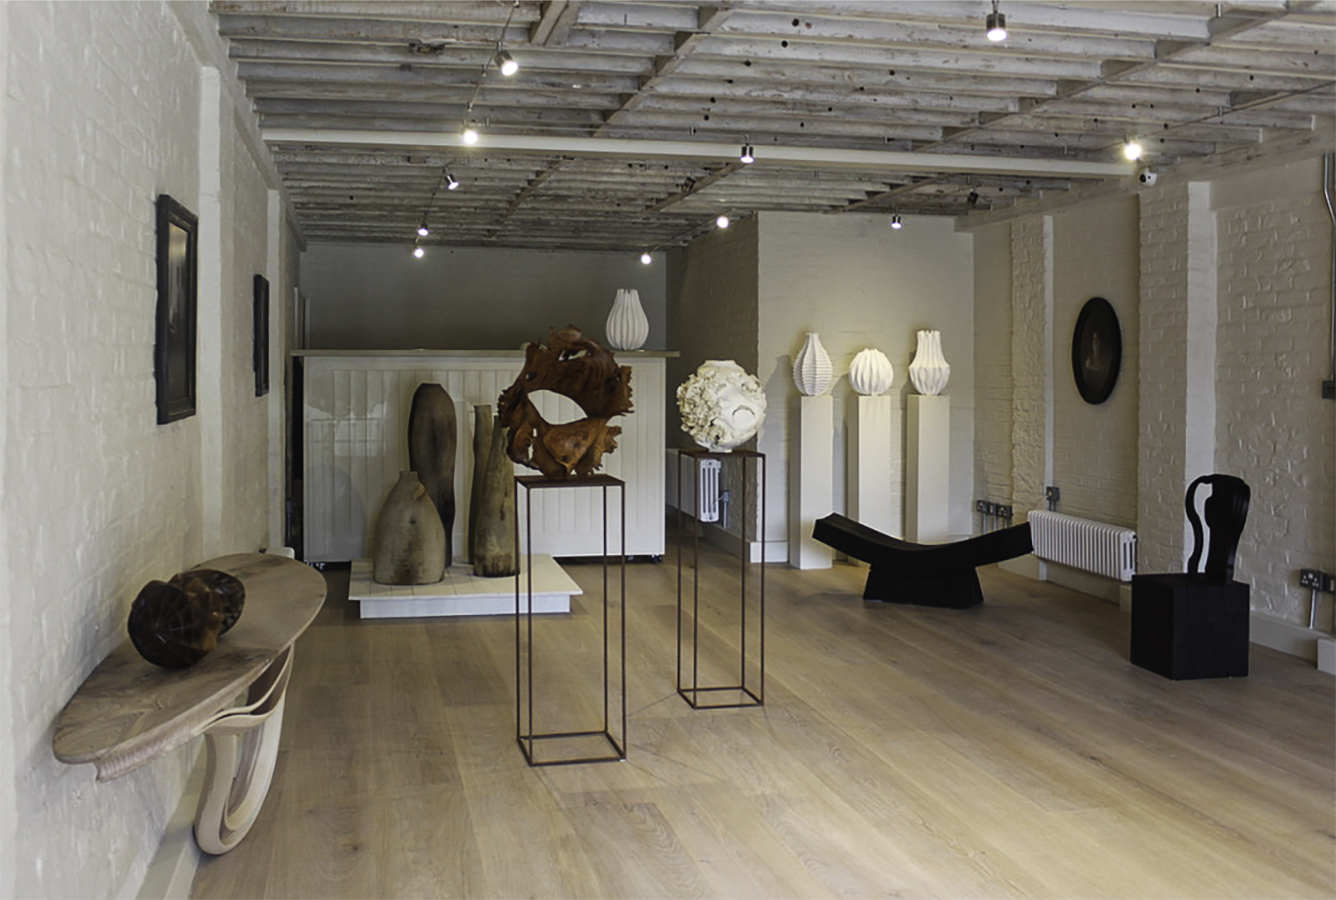 Masterpiece London 2019 collections on display at Sarah Myerscough Gallery in Barnes - London, UK ⓒ Sarah Myerscough Gallery